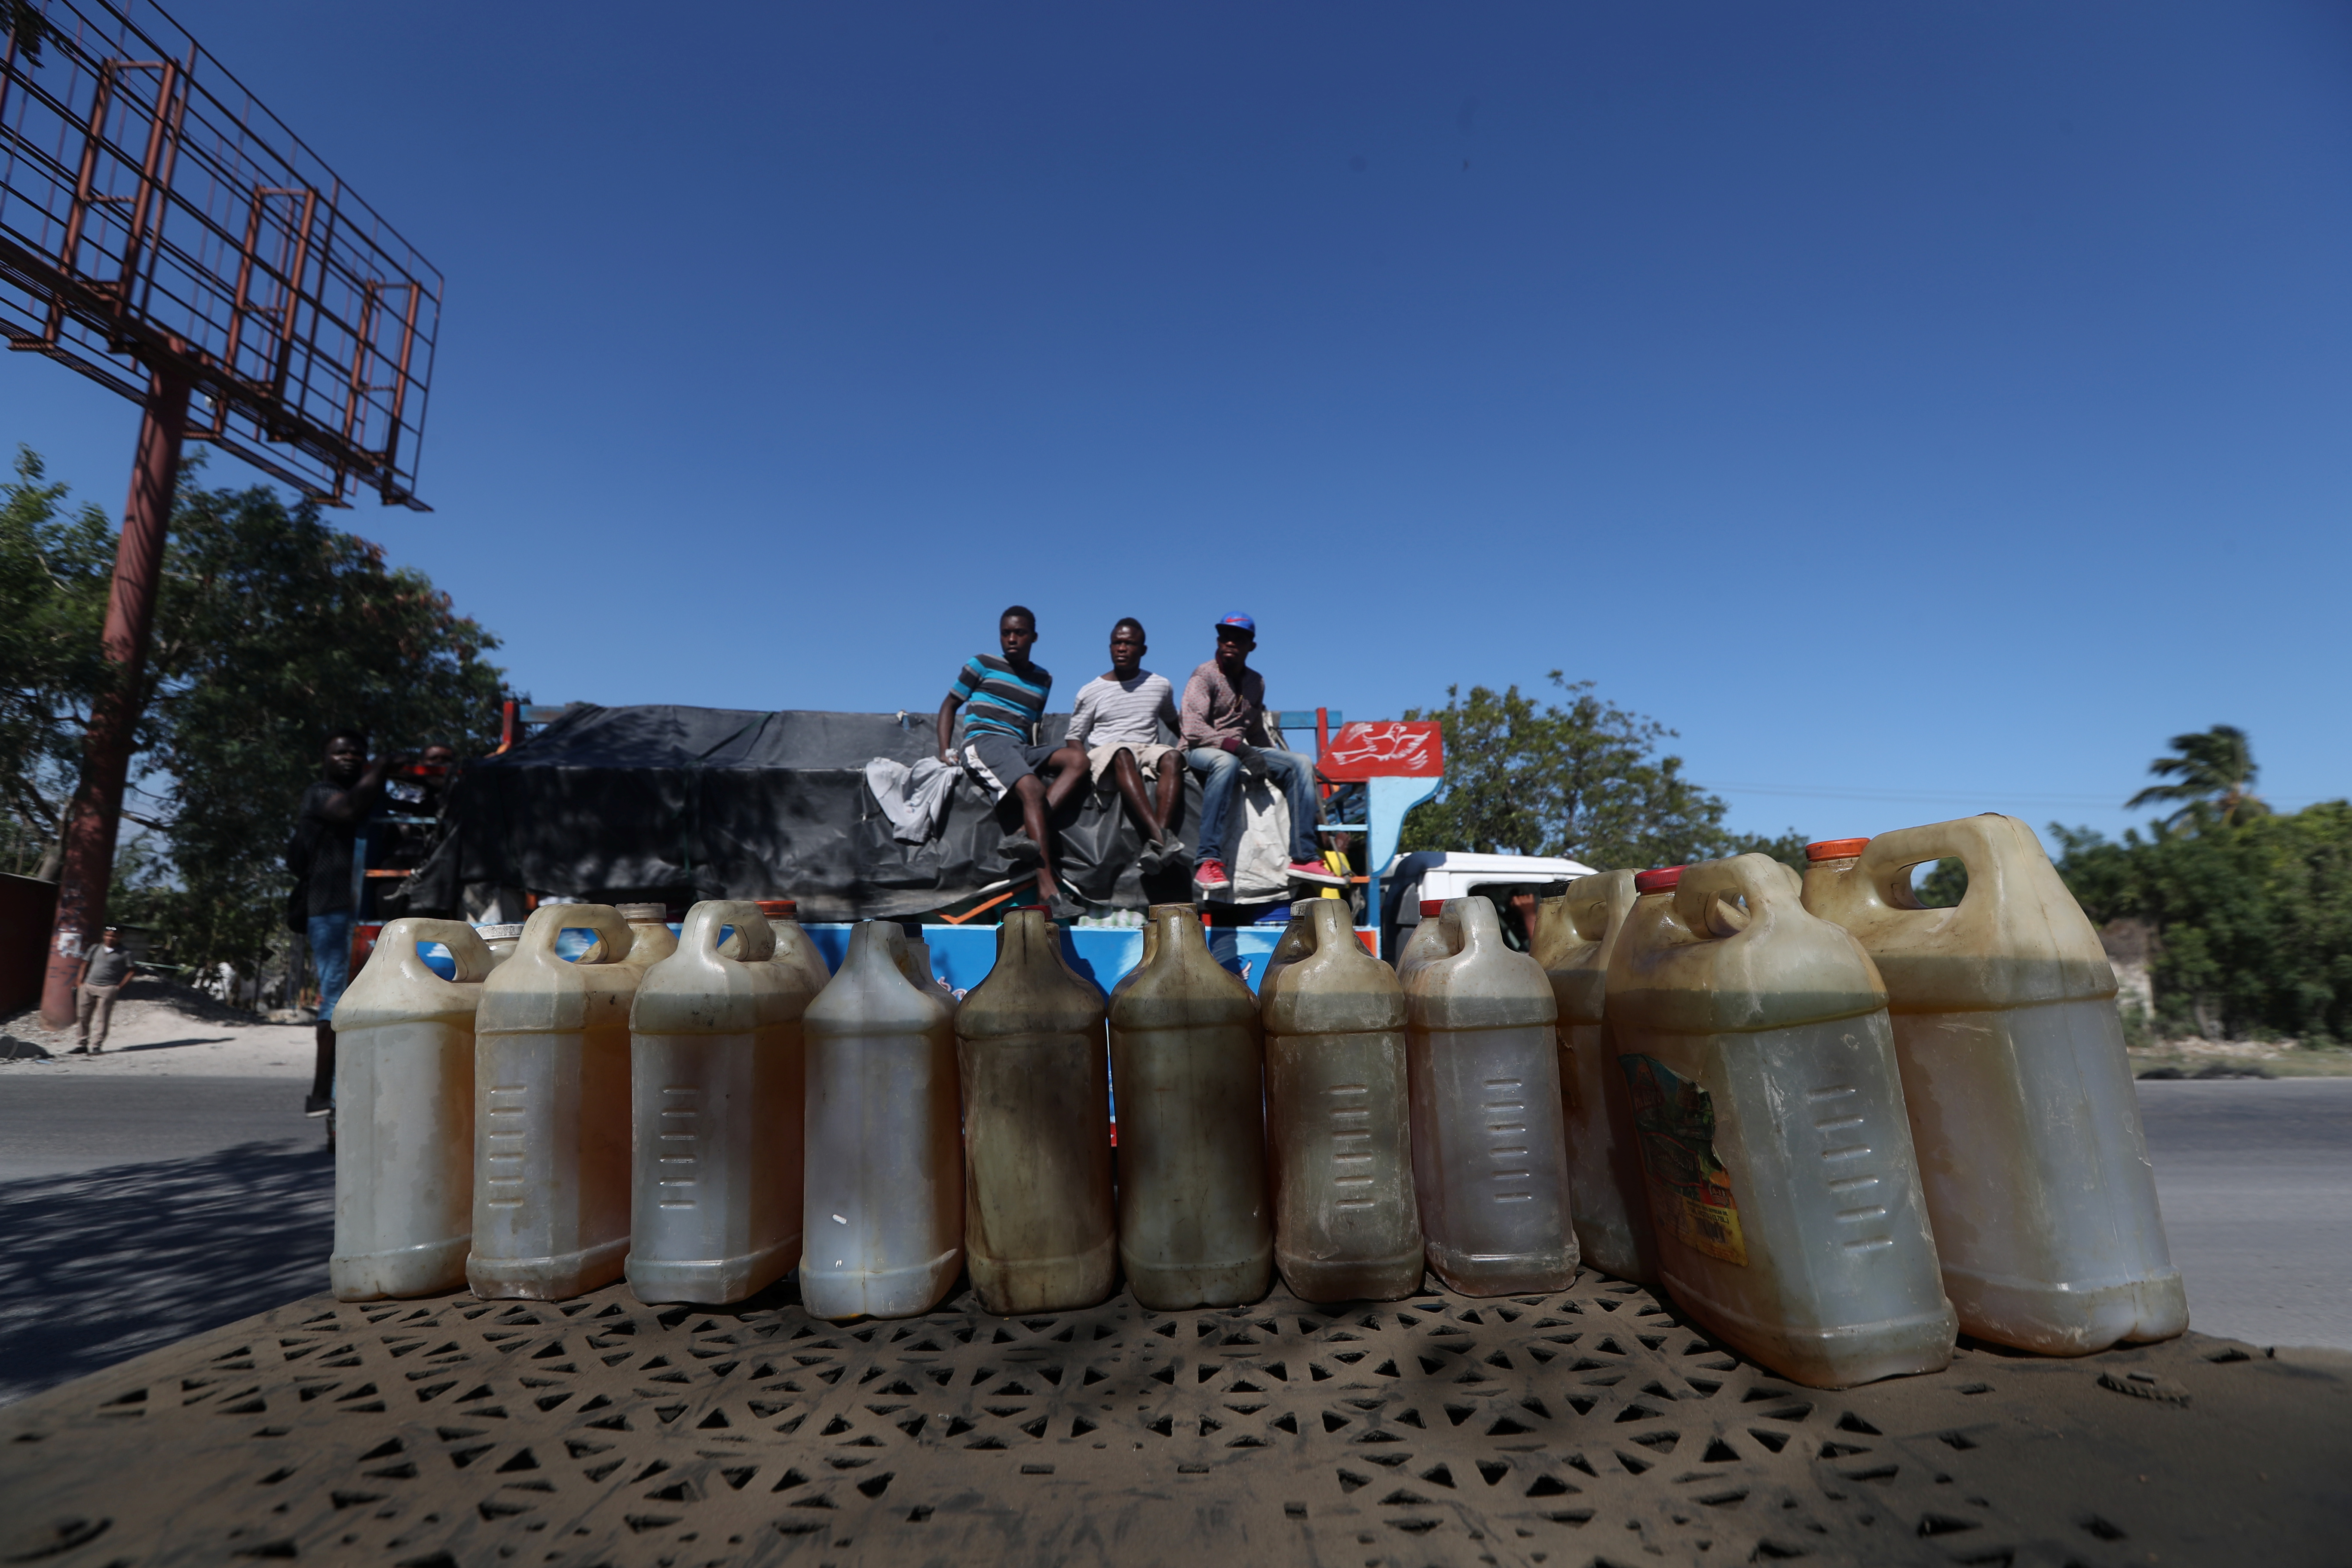 Containers filled with fuel that is sold on the black market are offered in a street in Port-au-Prince, Haiti, February 24, 2019.